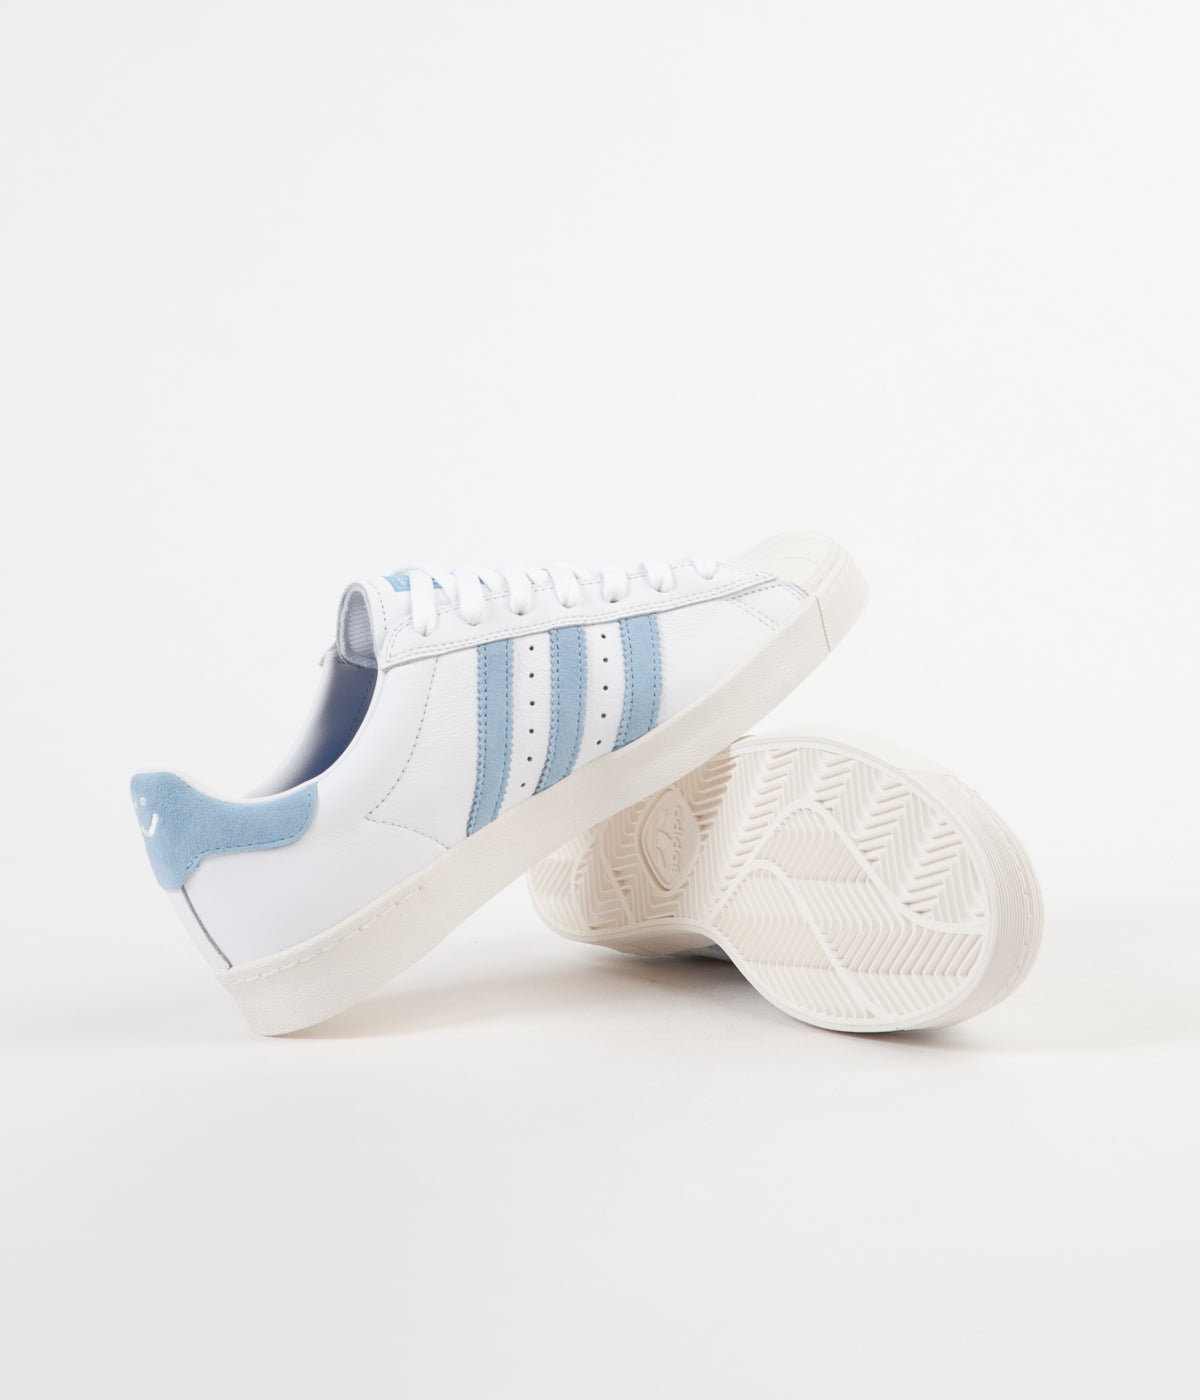 Adidas x Krooked Superstar Vulc Shoes - FTW White / Customised / Chalk White